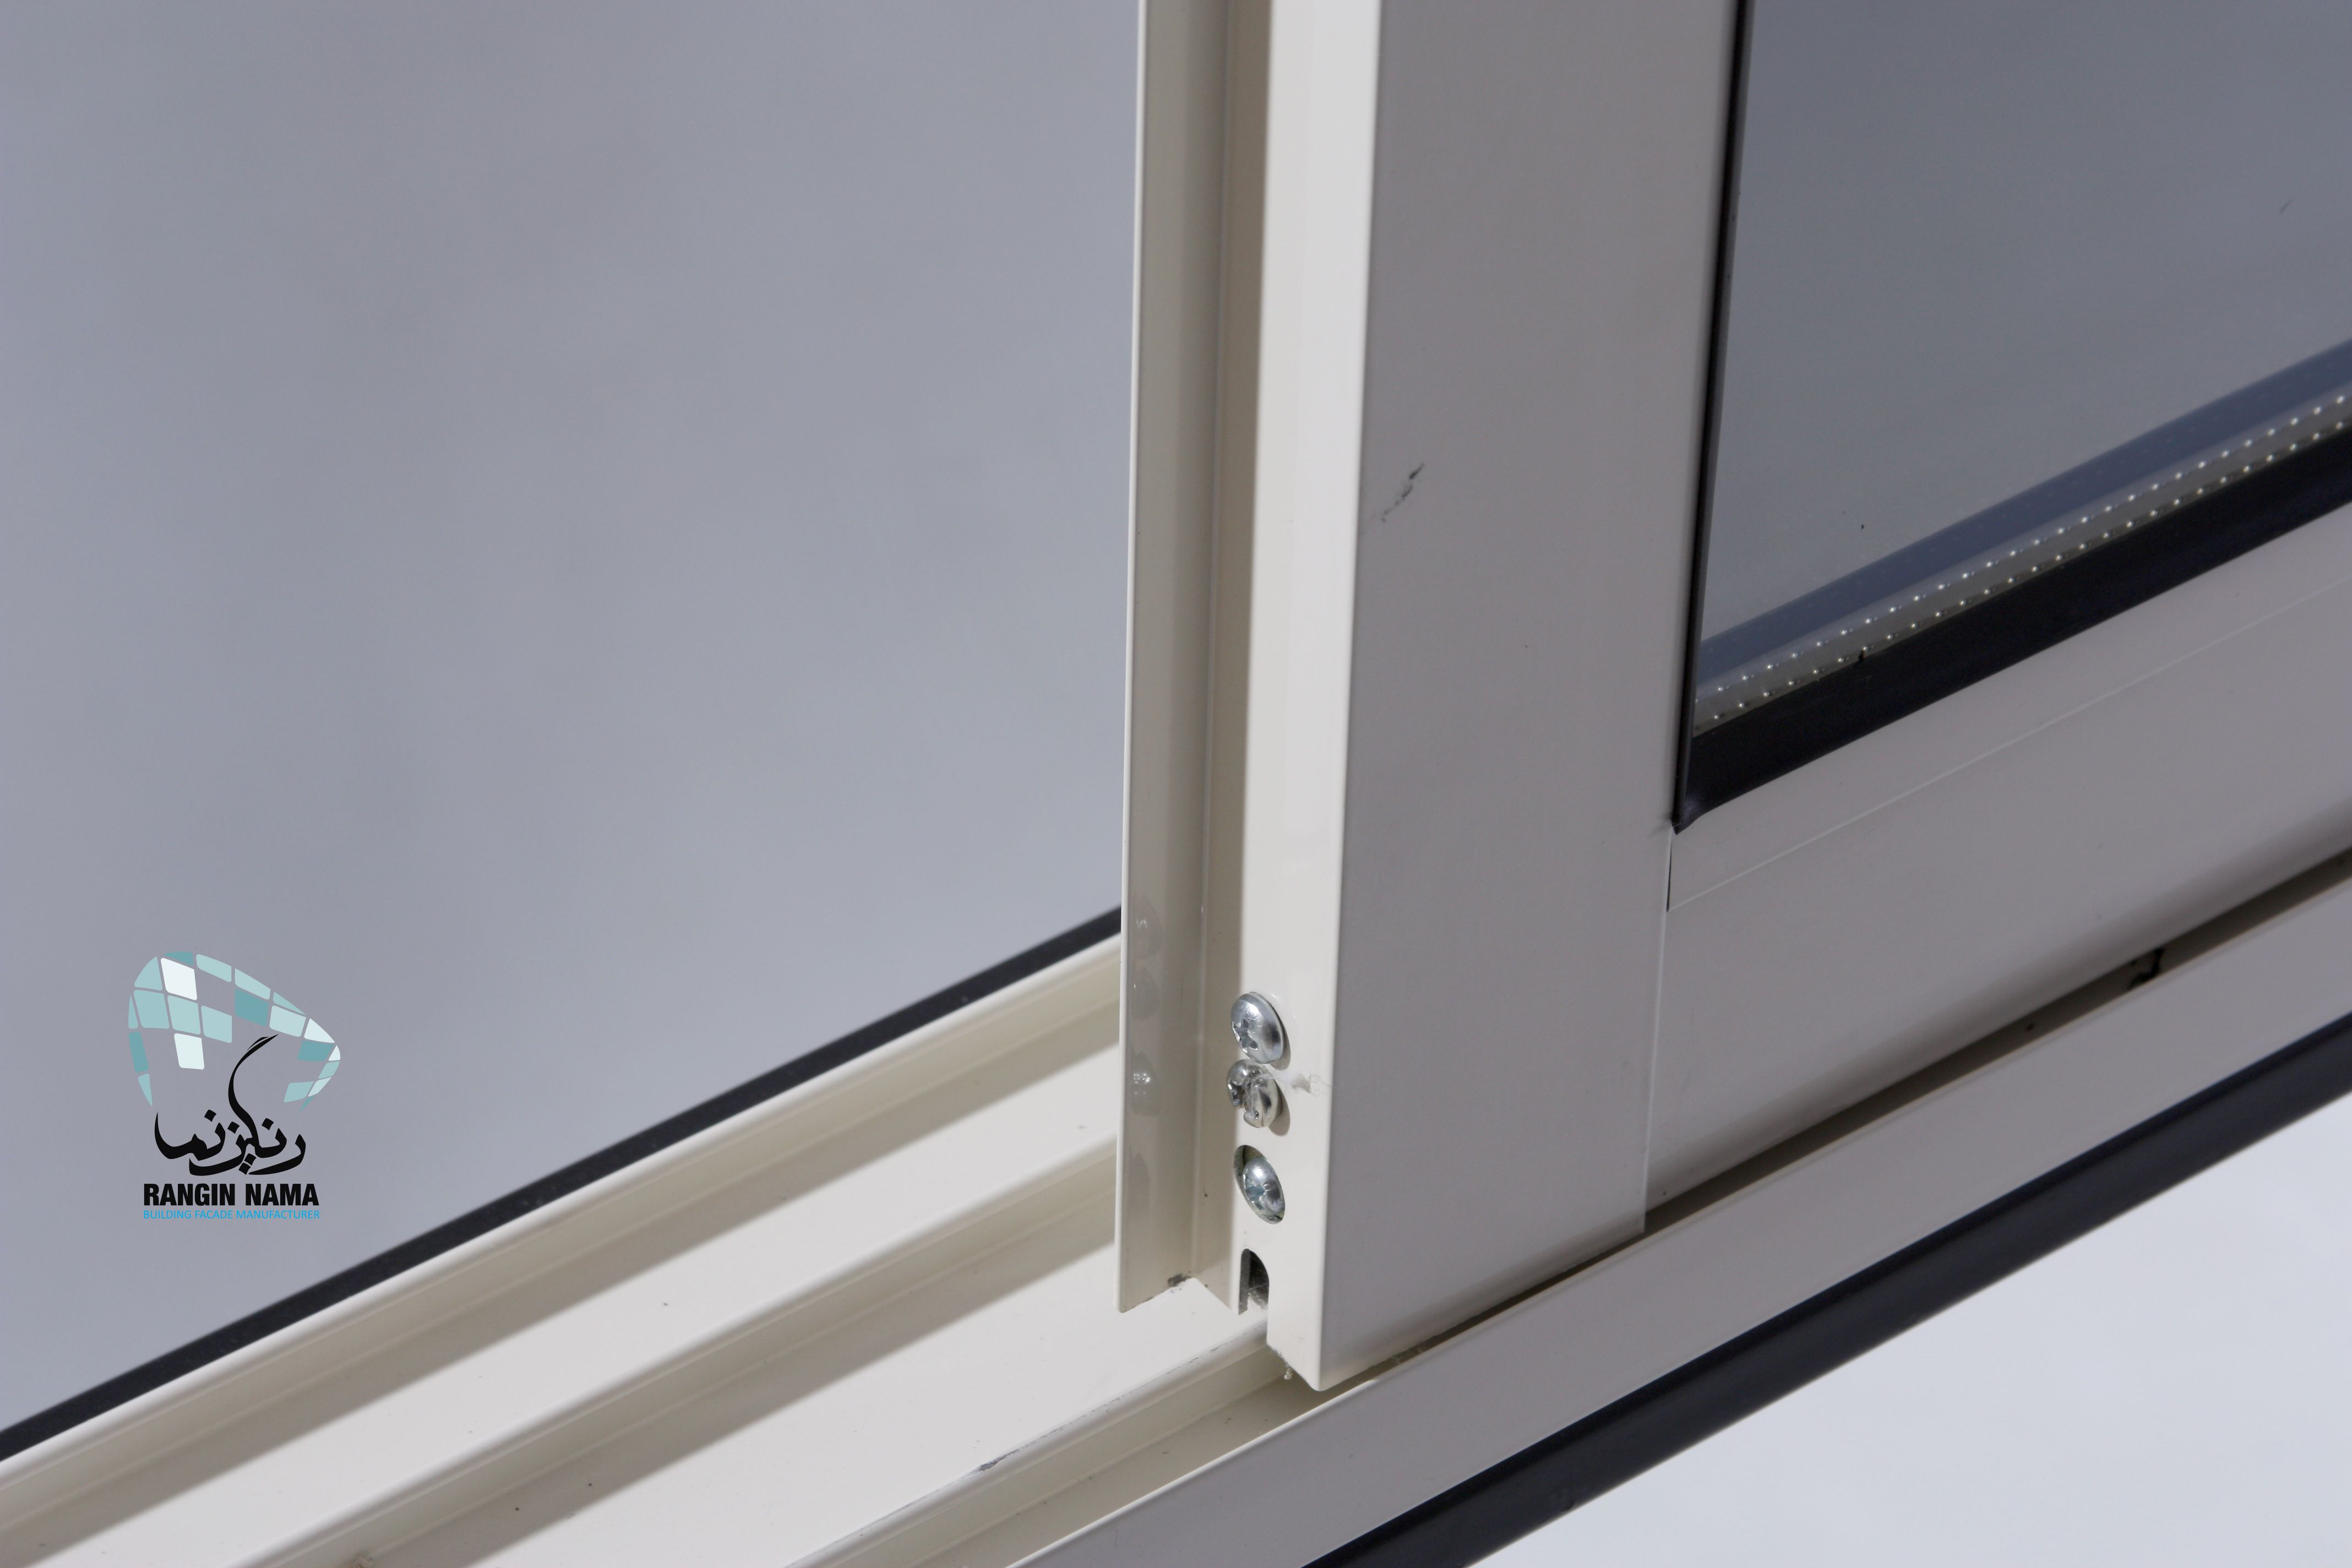 aluminum window features elegant frame weather gasket all over the frame slightly slope in bottom rail rail for window screen adjustable ball bearings - Window Screen Frame Material